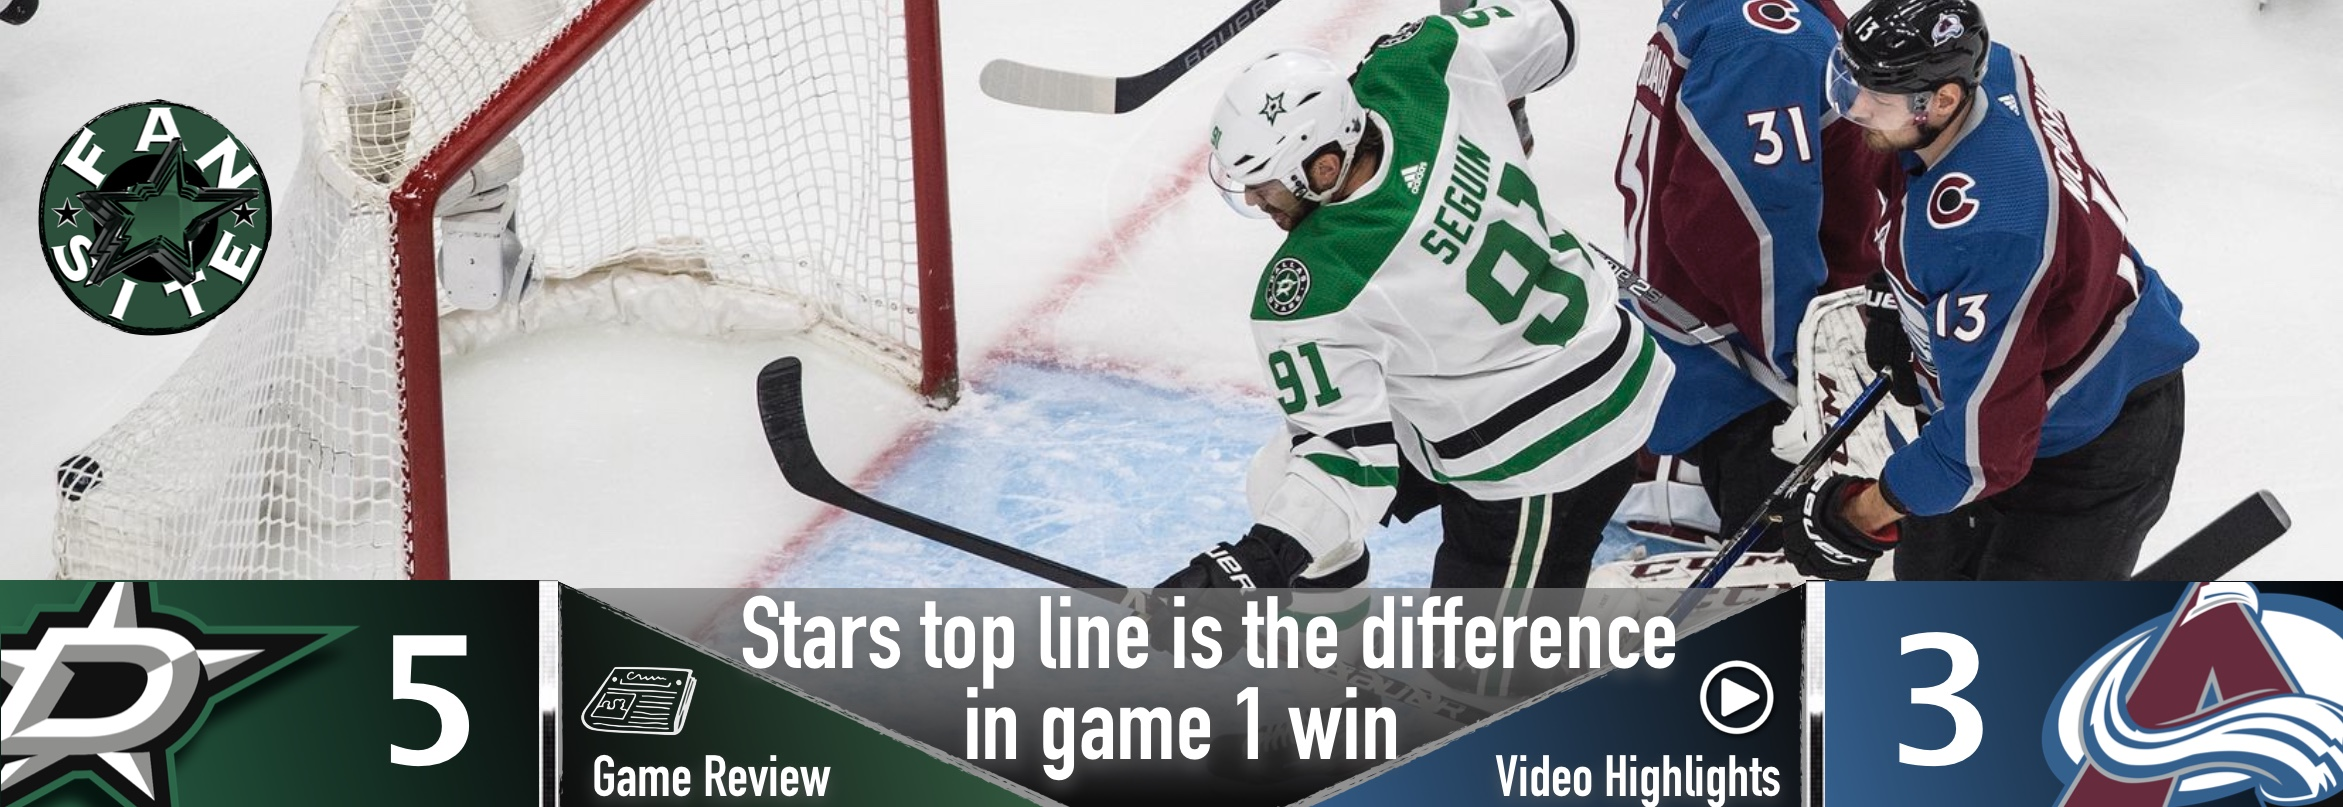 Stars top line is the difference in game 1 win